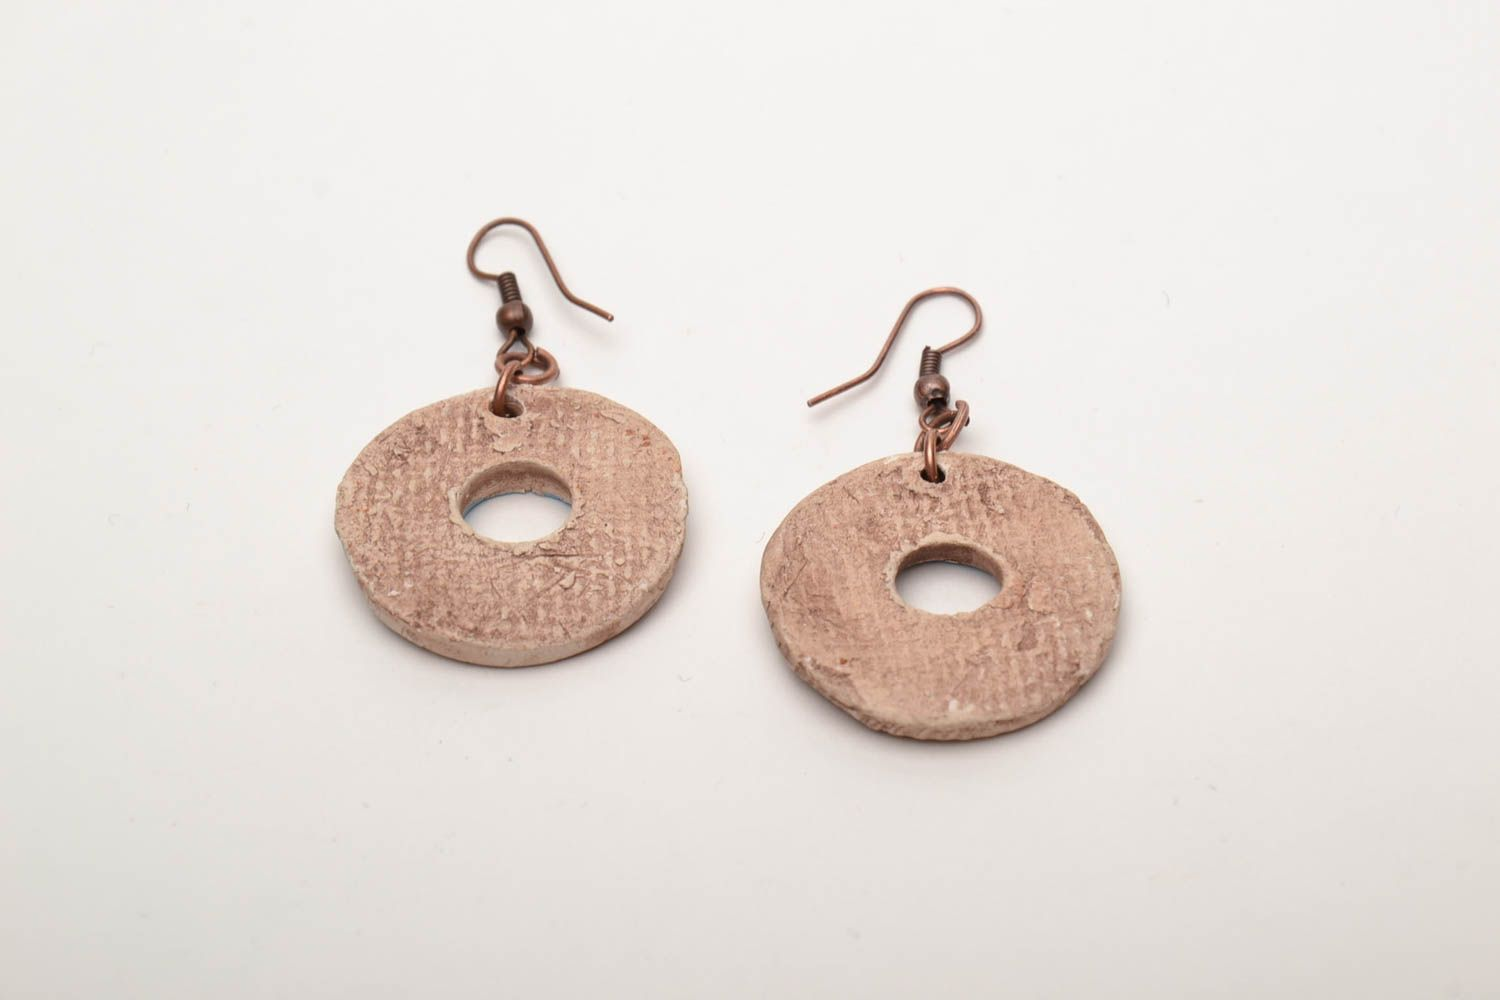 Round clay earrings photo 5